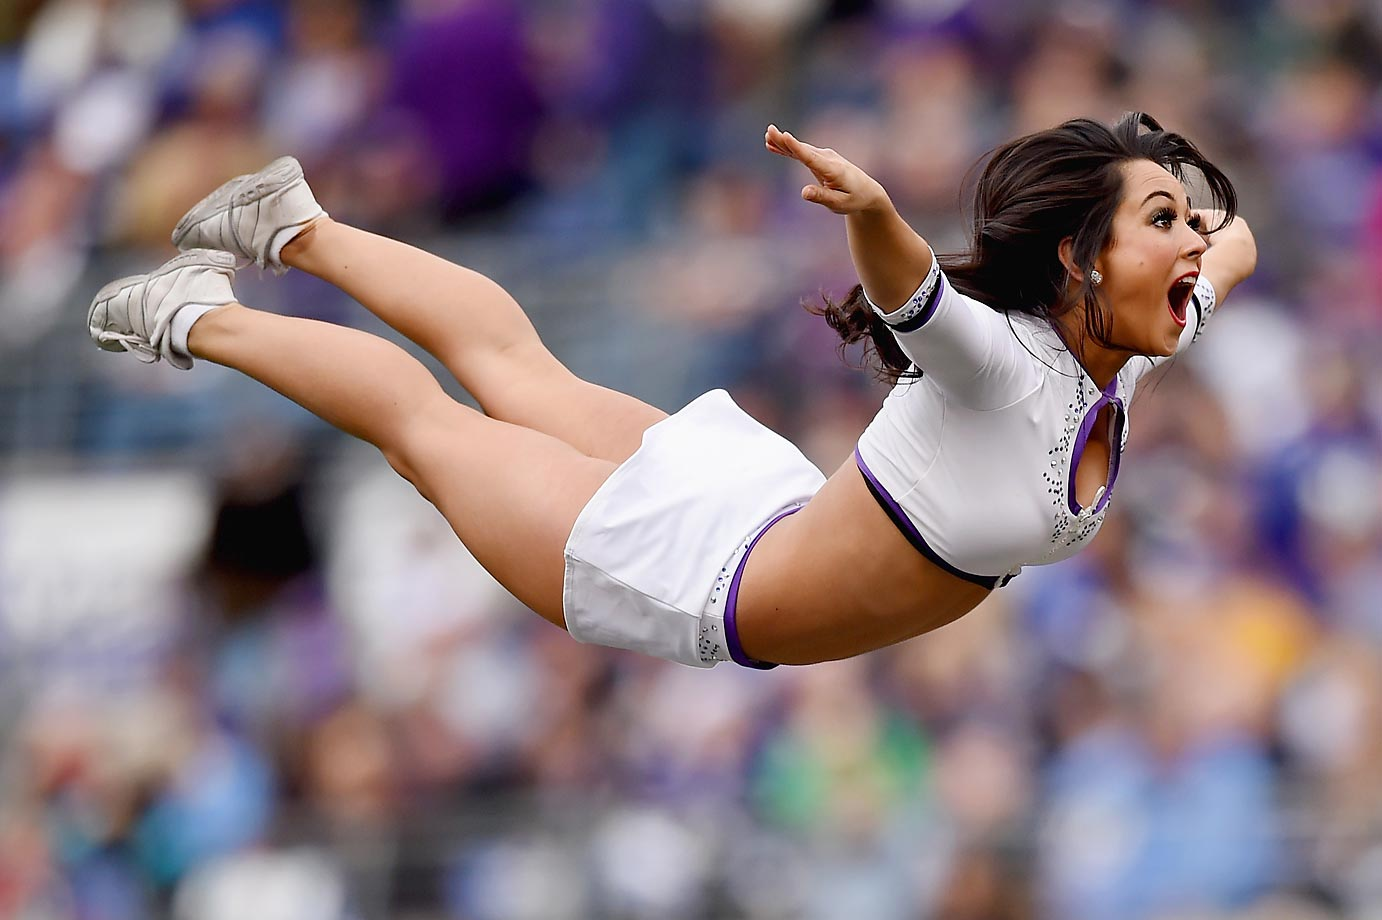 Baltimore Ravens cheerleaders perform during Sunday's game against the San Diego Chargers.